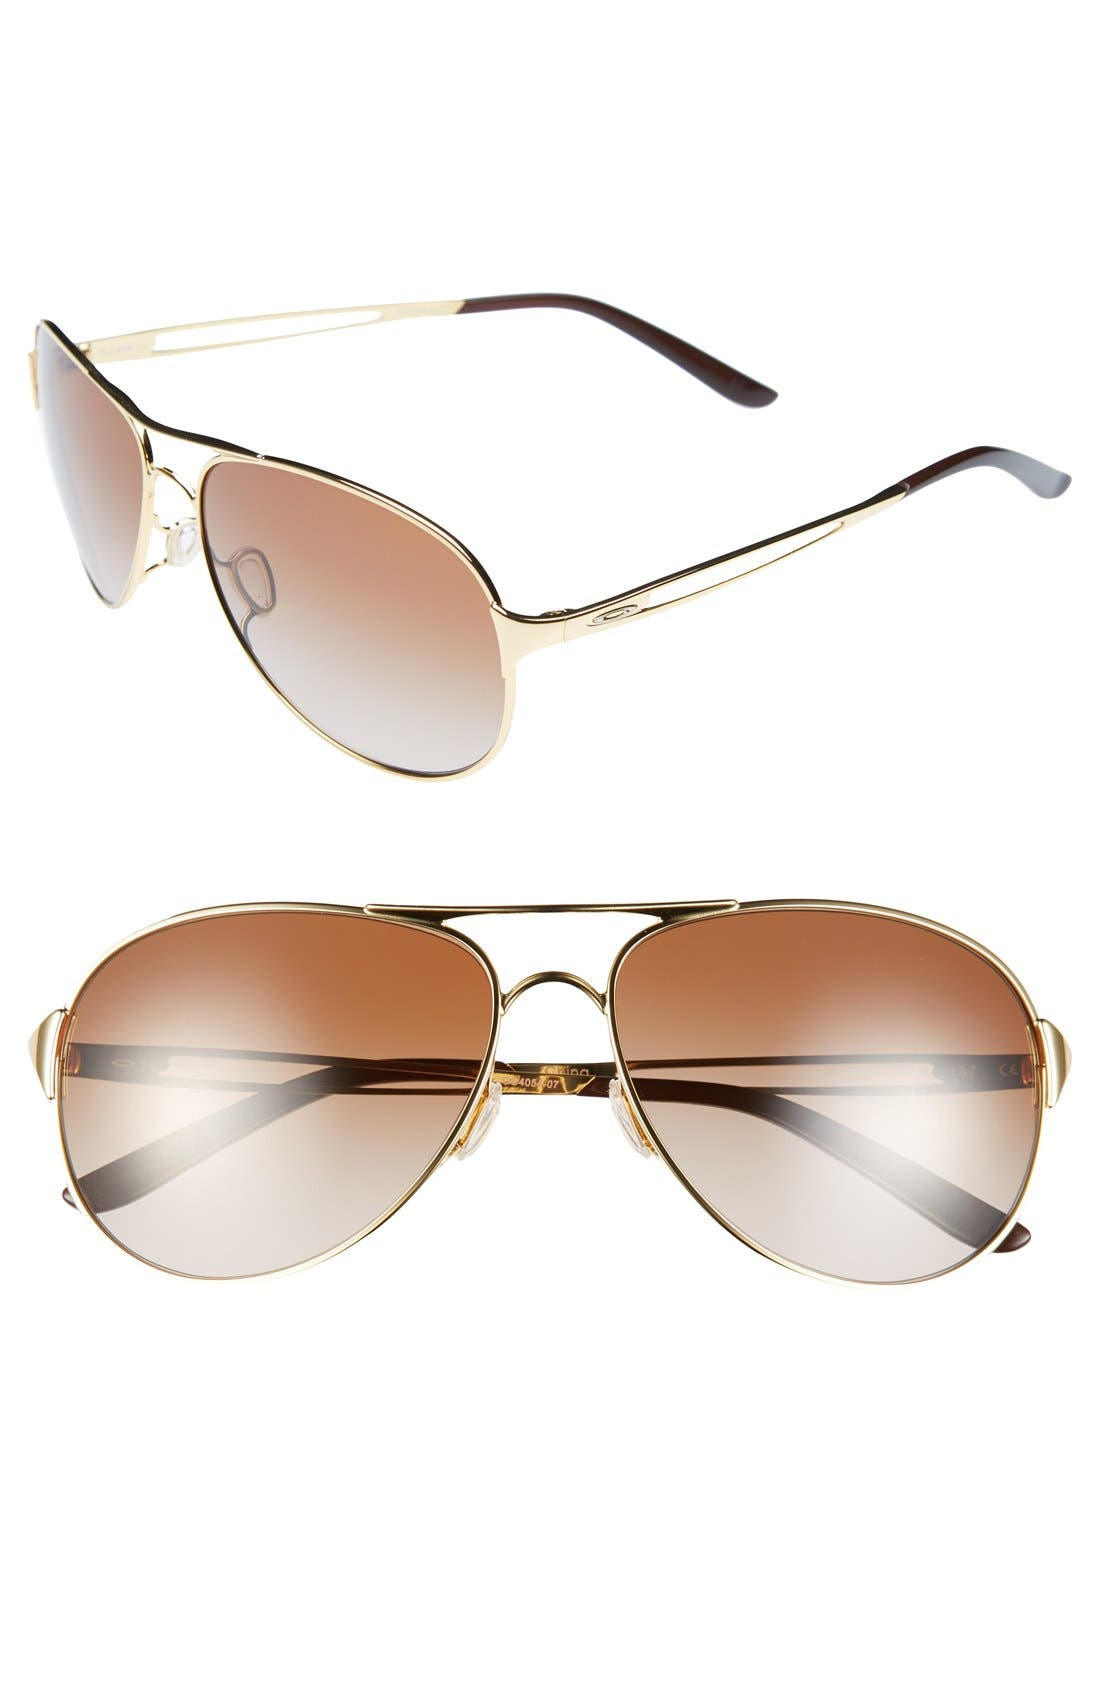 Main Image - Oakley 'Caveat™' 60mm Aviator Sunglasses